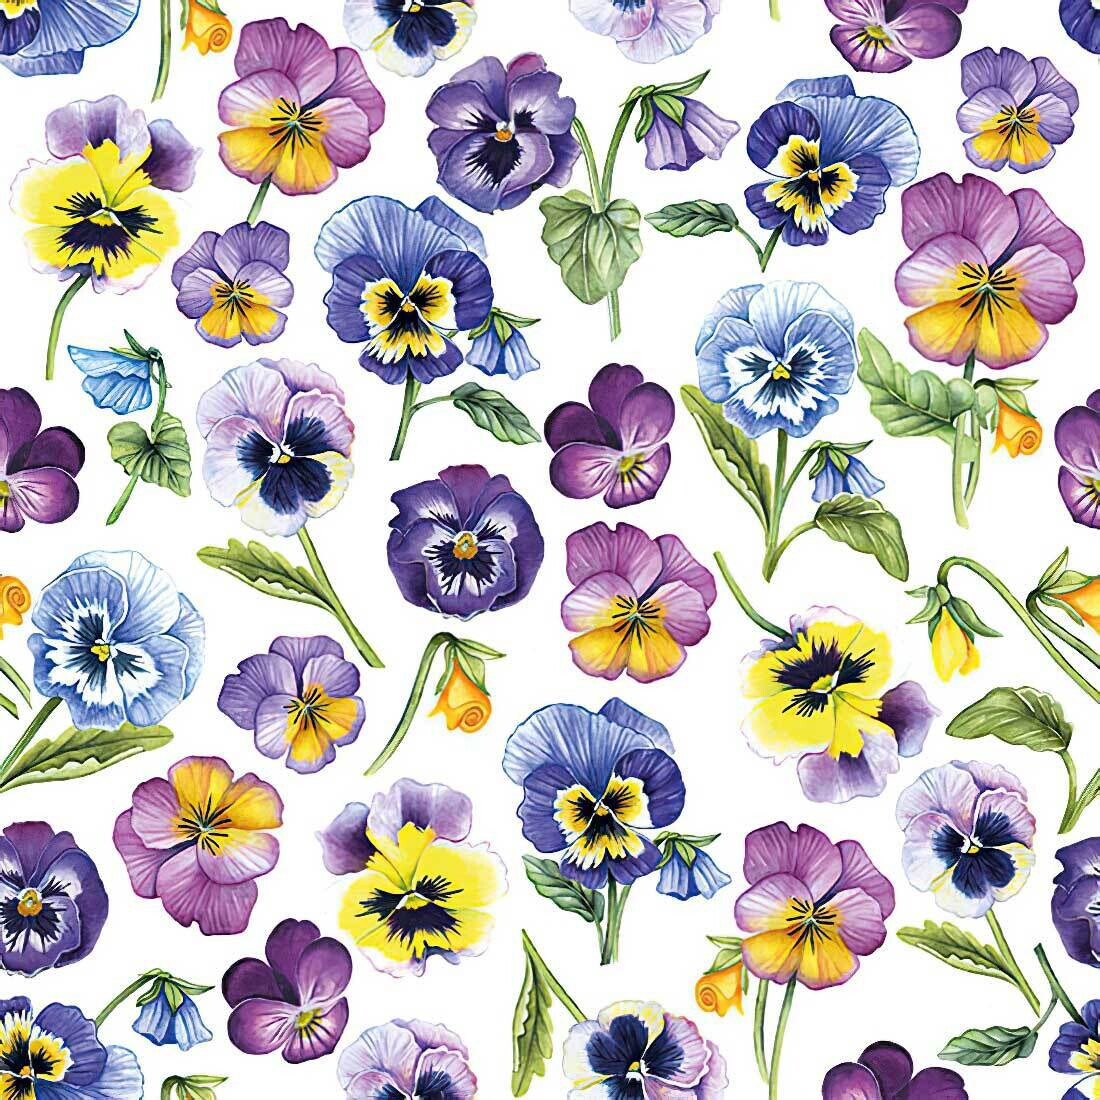 Decoupage Paper Napkins - Floral - Pansy All Over (1 Sheet)